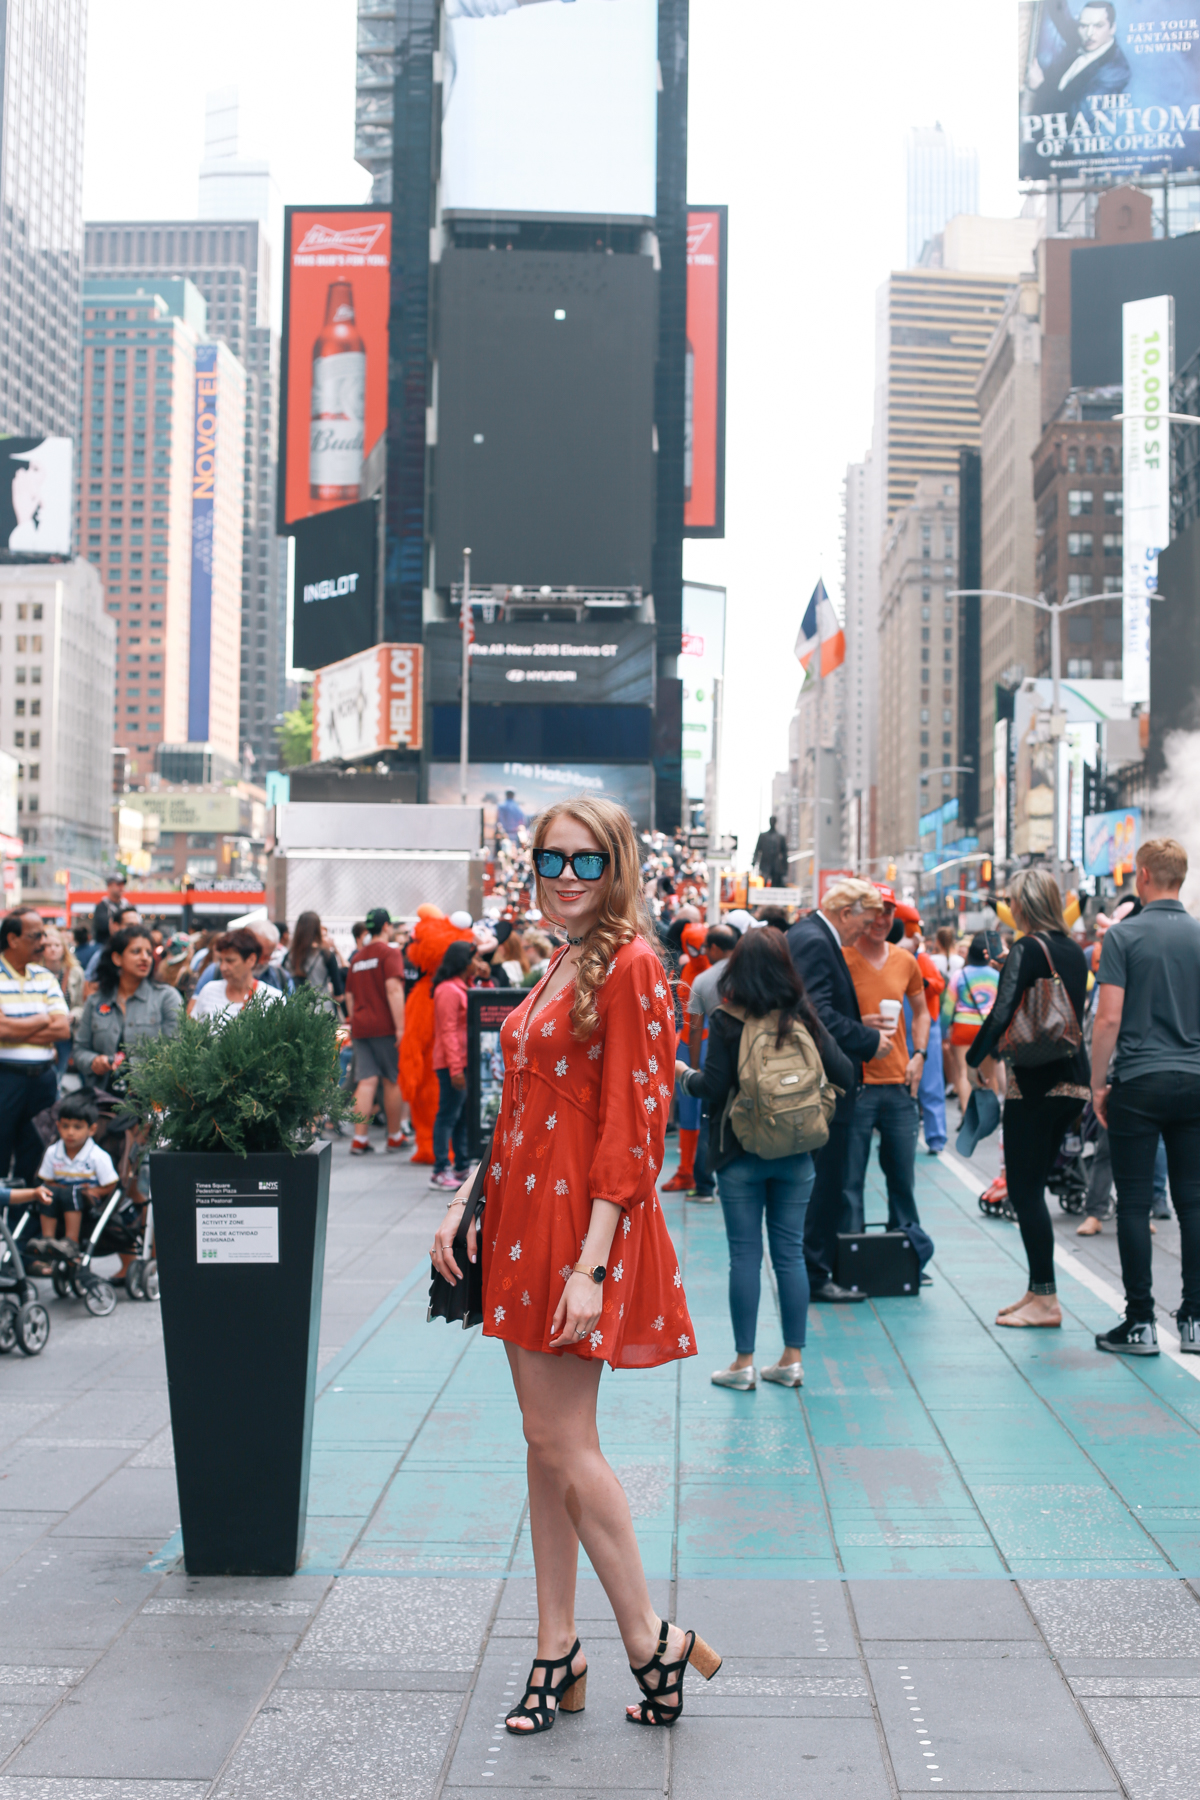 new york minute (4 of 13)